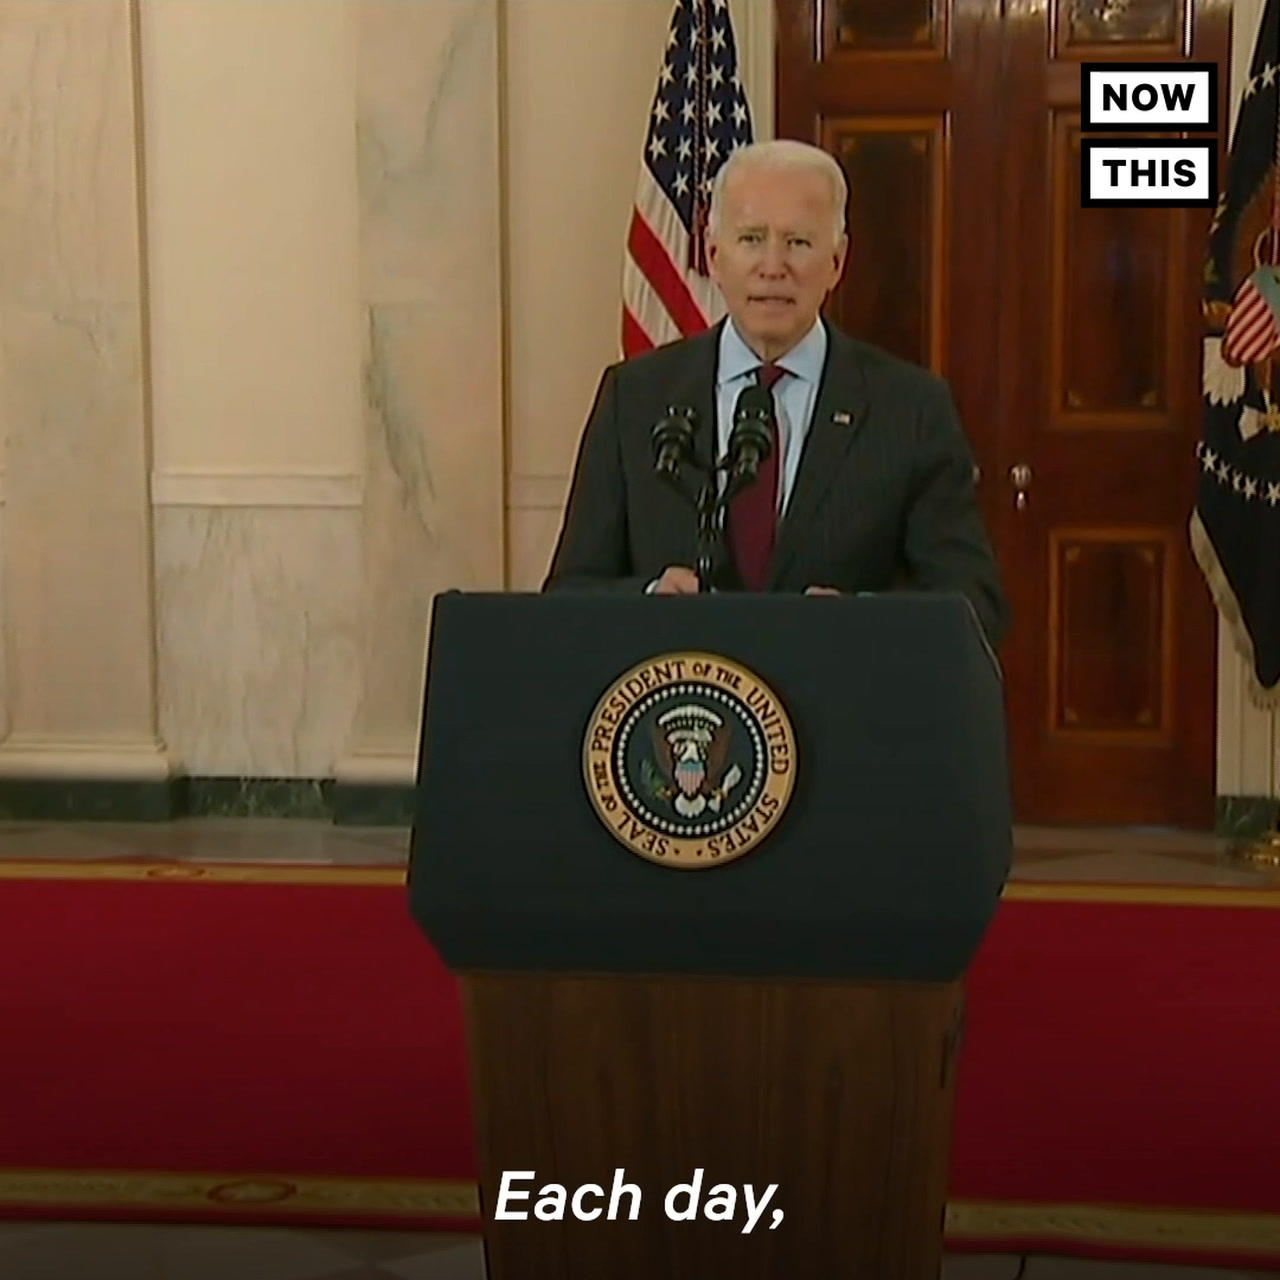 Pres. Biden Consoles the Nation After 500k Deaths